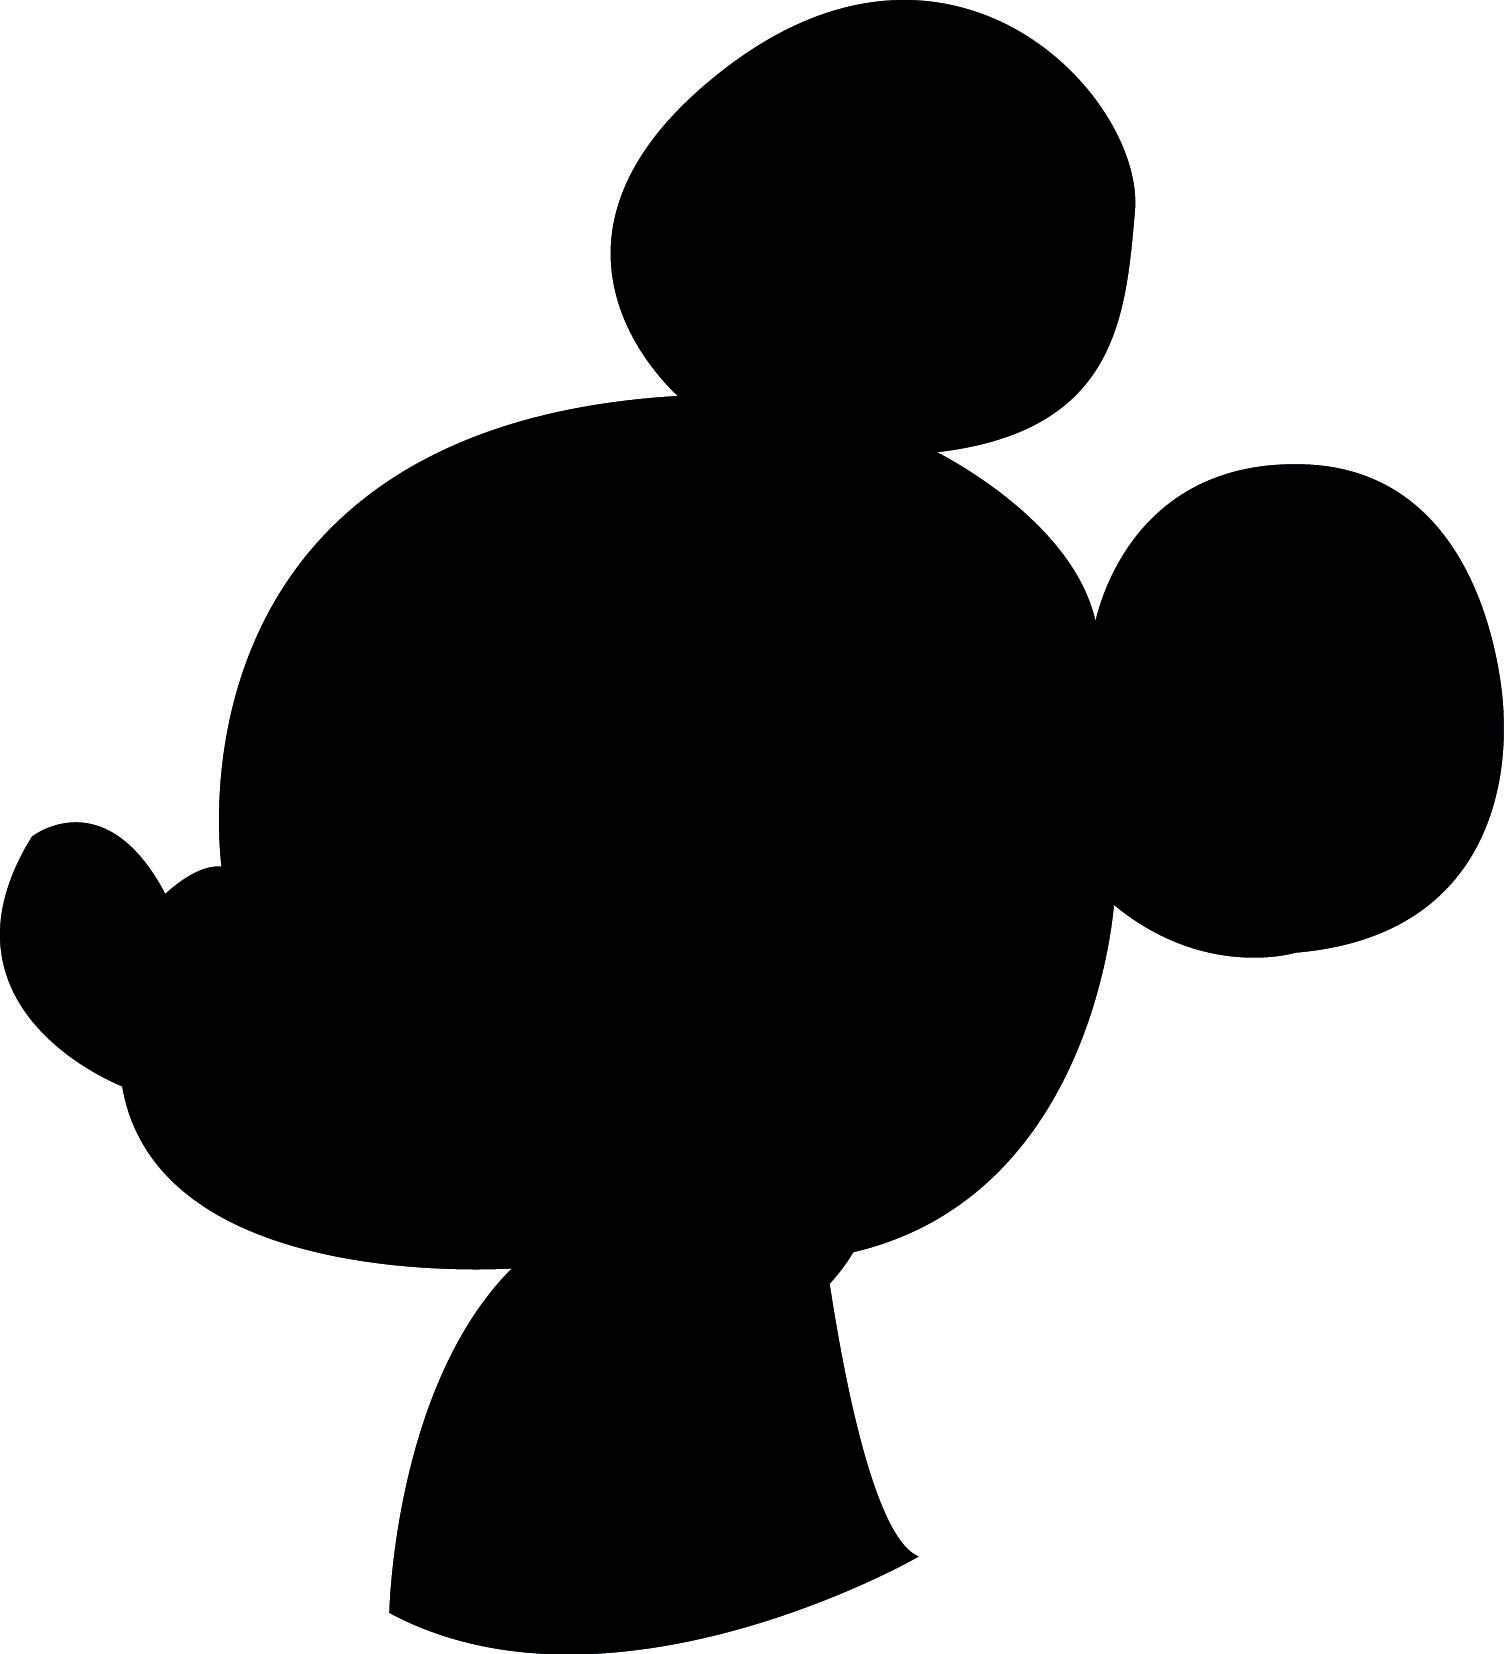 Mickey and other Disney silhouettes - Epidermal Enhancement ...